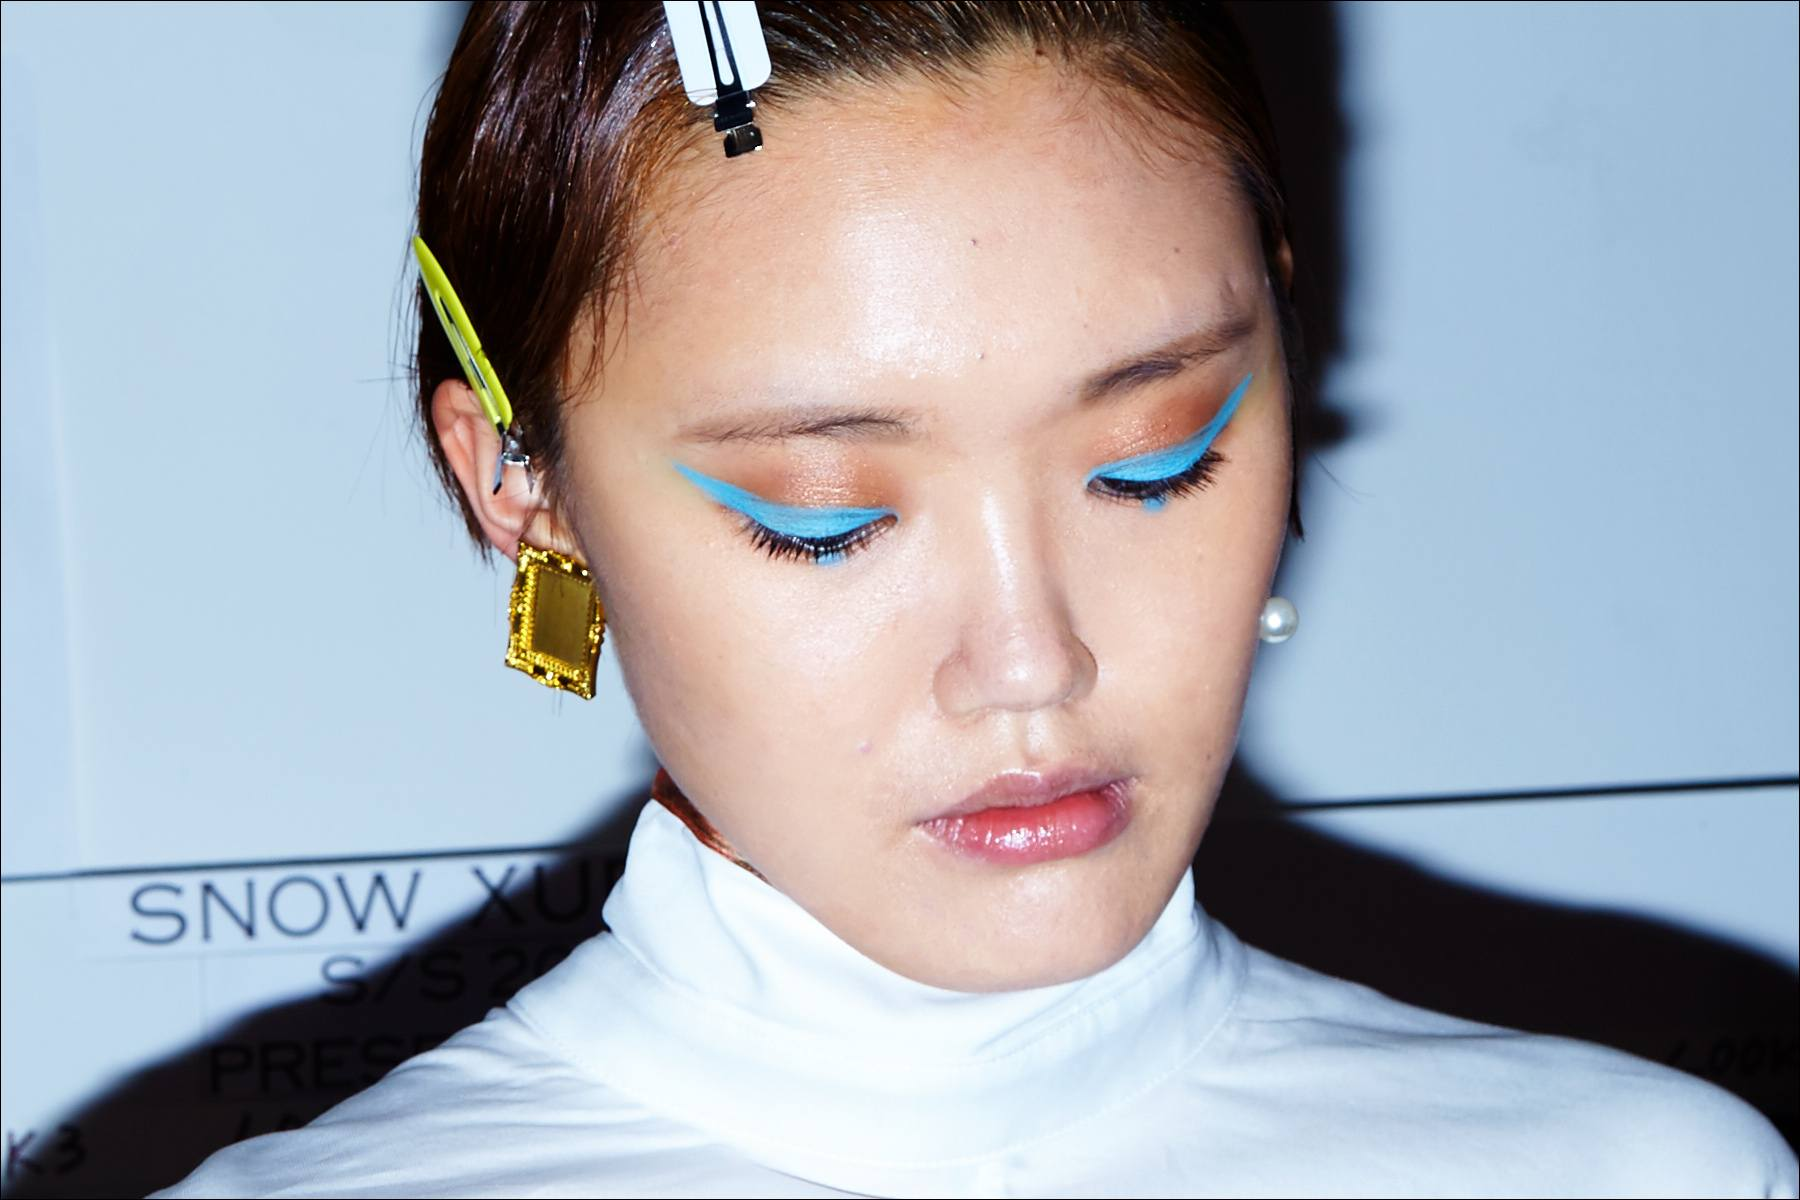 A model's makeup, backstage at Snow Xue Gao. Spring/Summer 2018. Ponyboy magazine NY.